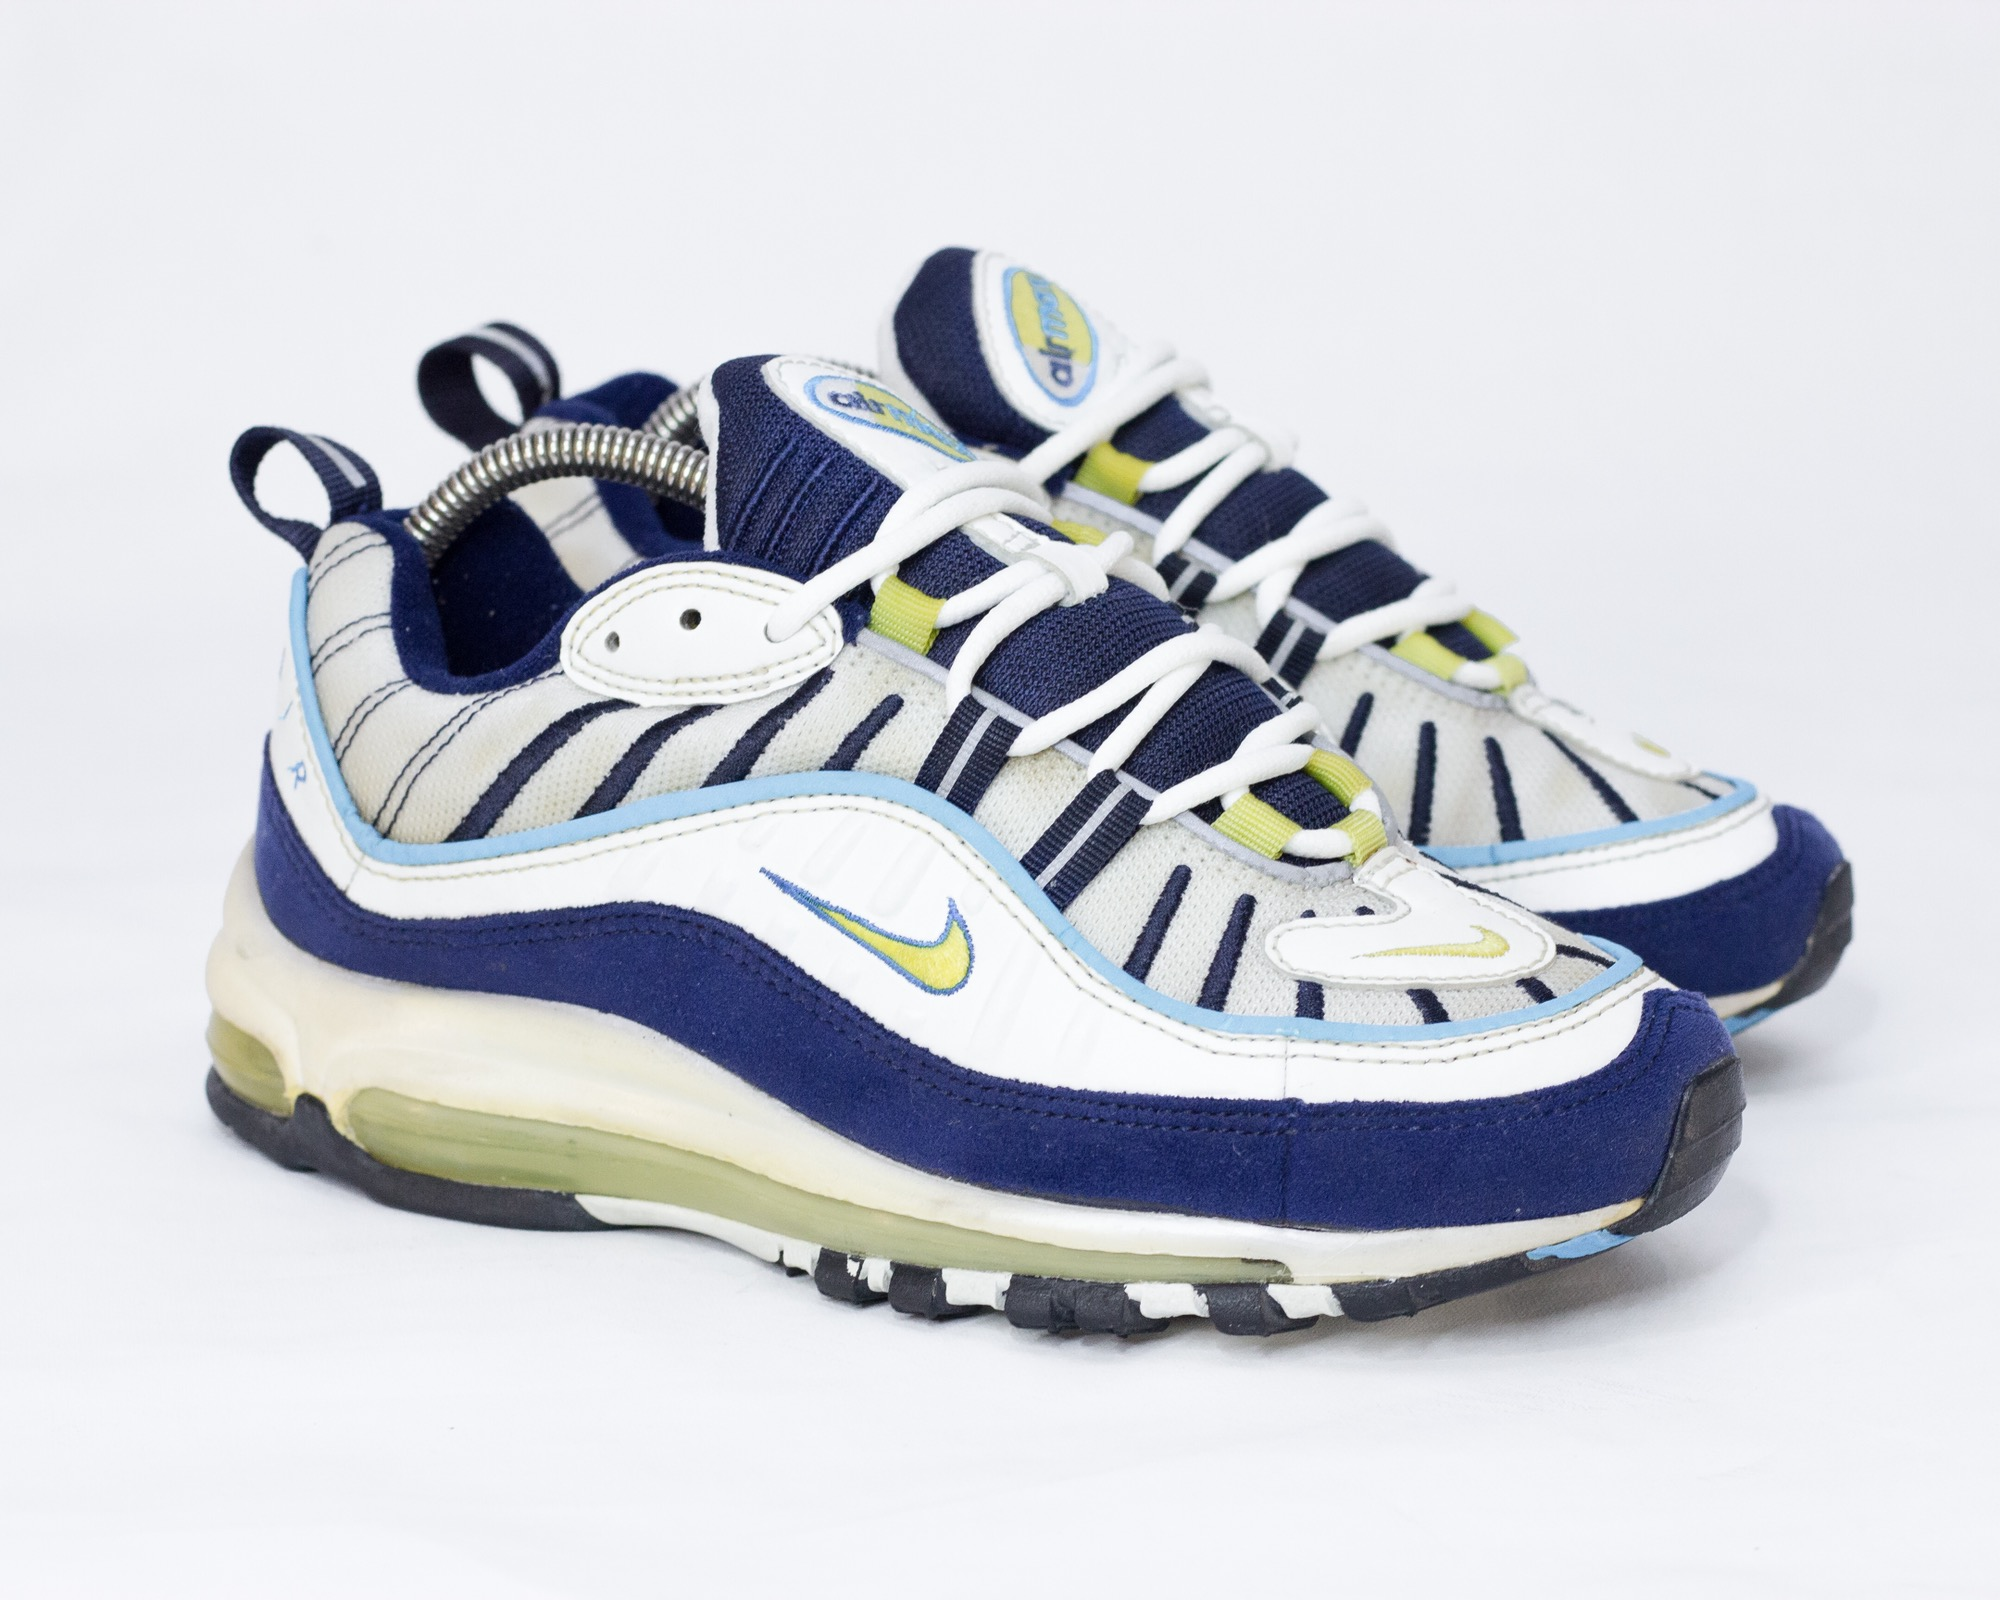 huge discount 04dcf 72fab RARE Vintage Nike Air Max 98 OG (1998) White/Navy/Yellow